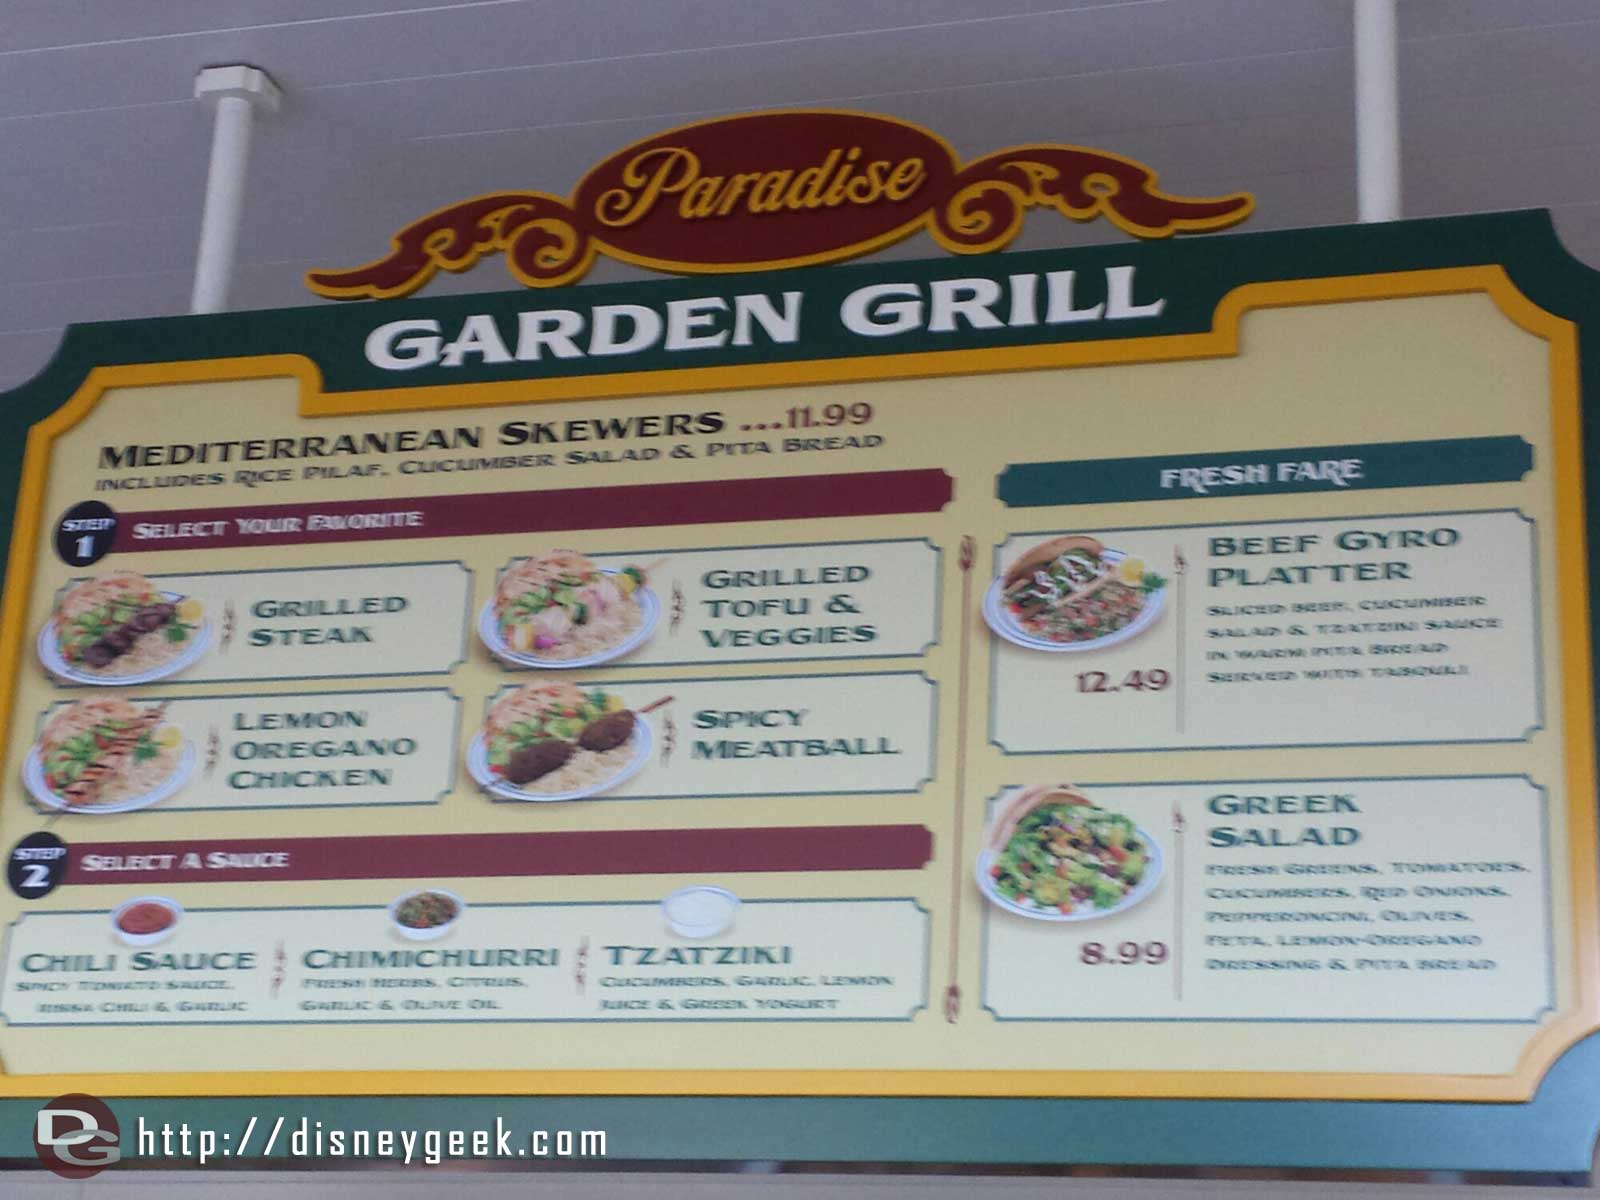 The Mediterranean menu has returned to the Paradise Garden Grill